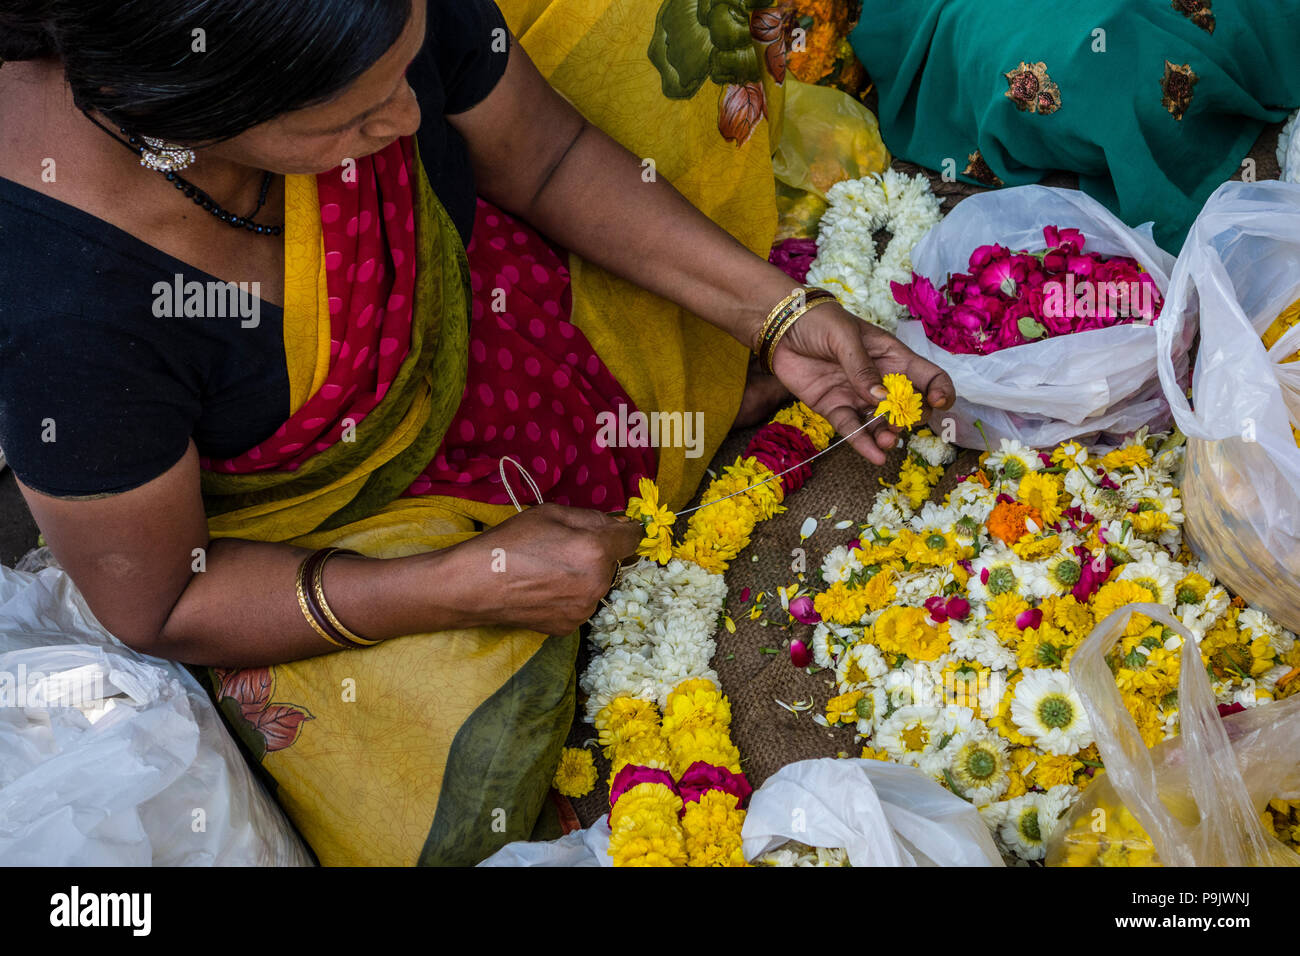 Indian woman making traditional flower garlands at a market stall in Old Delhi, Delhi, India Stock Photo